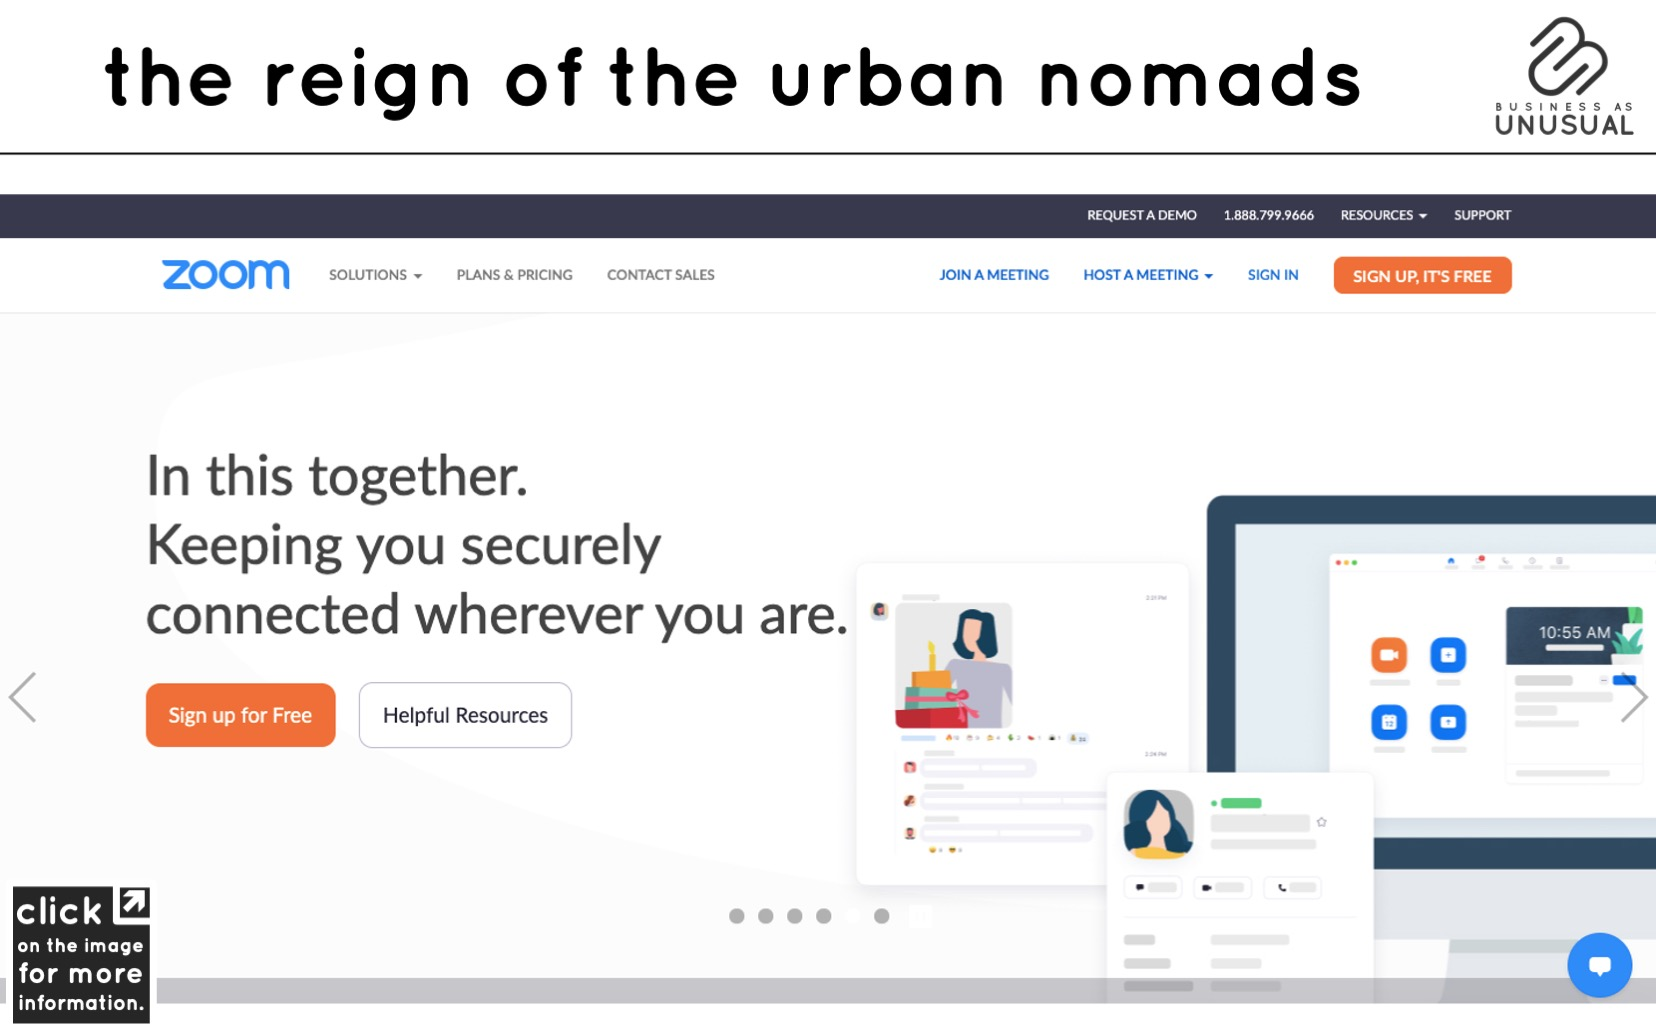 The Reign of the Urban Nomads - Zoom